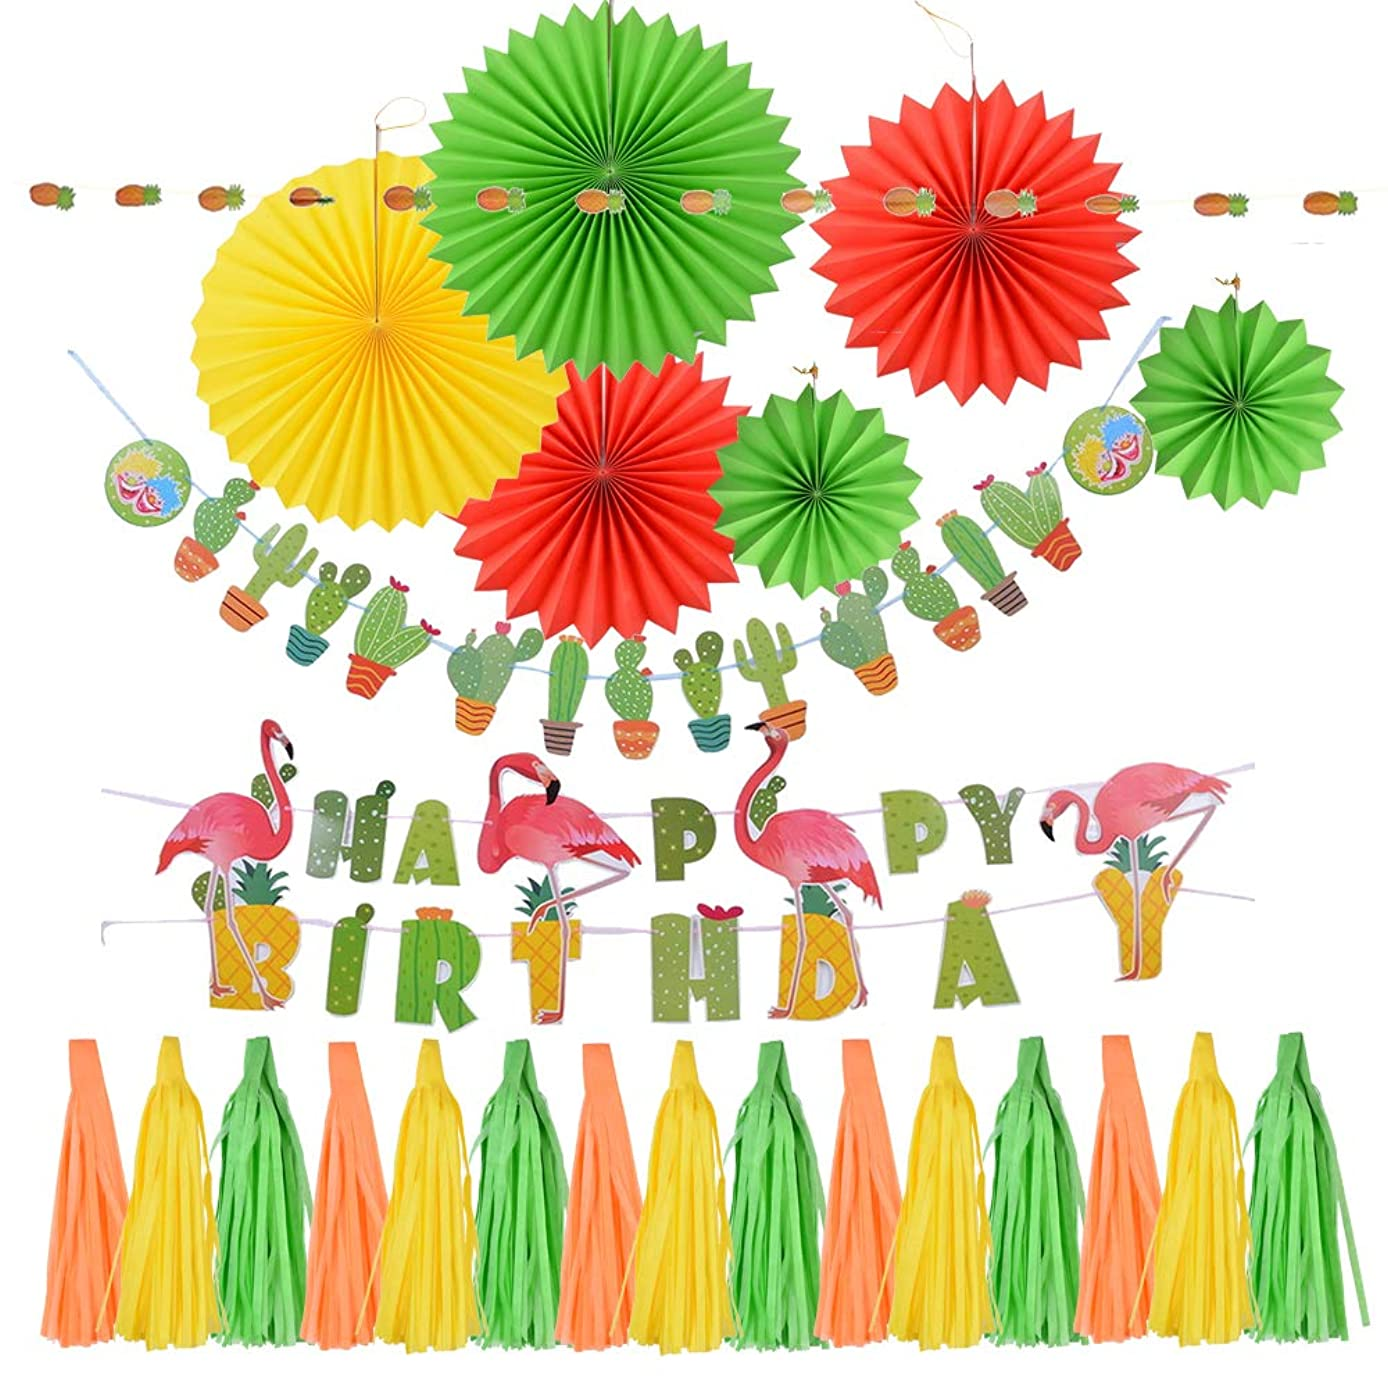 JuneJour Flamingo Birthday Party Supplies Flamingo Birthday Decorations Set with Flamingo Birthday Banner, Cactus Banner, Tissue Paper Tassel Garland, Hanging Paper Fans (24 Pack)